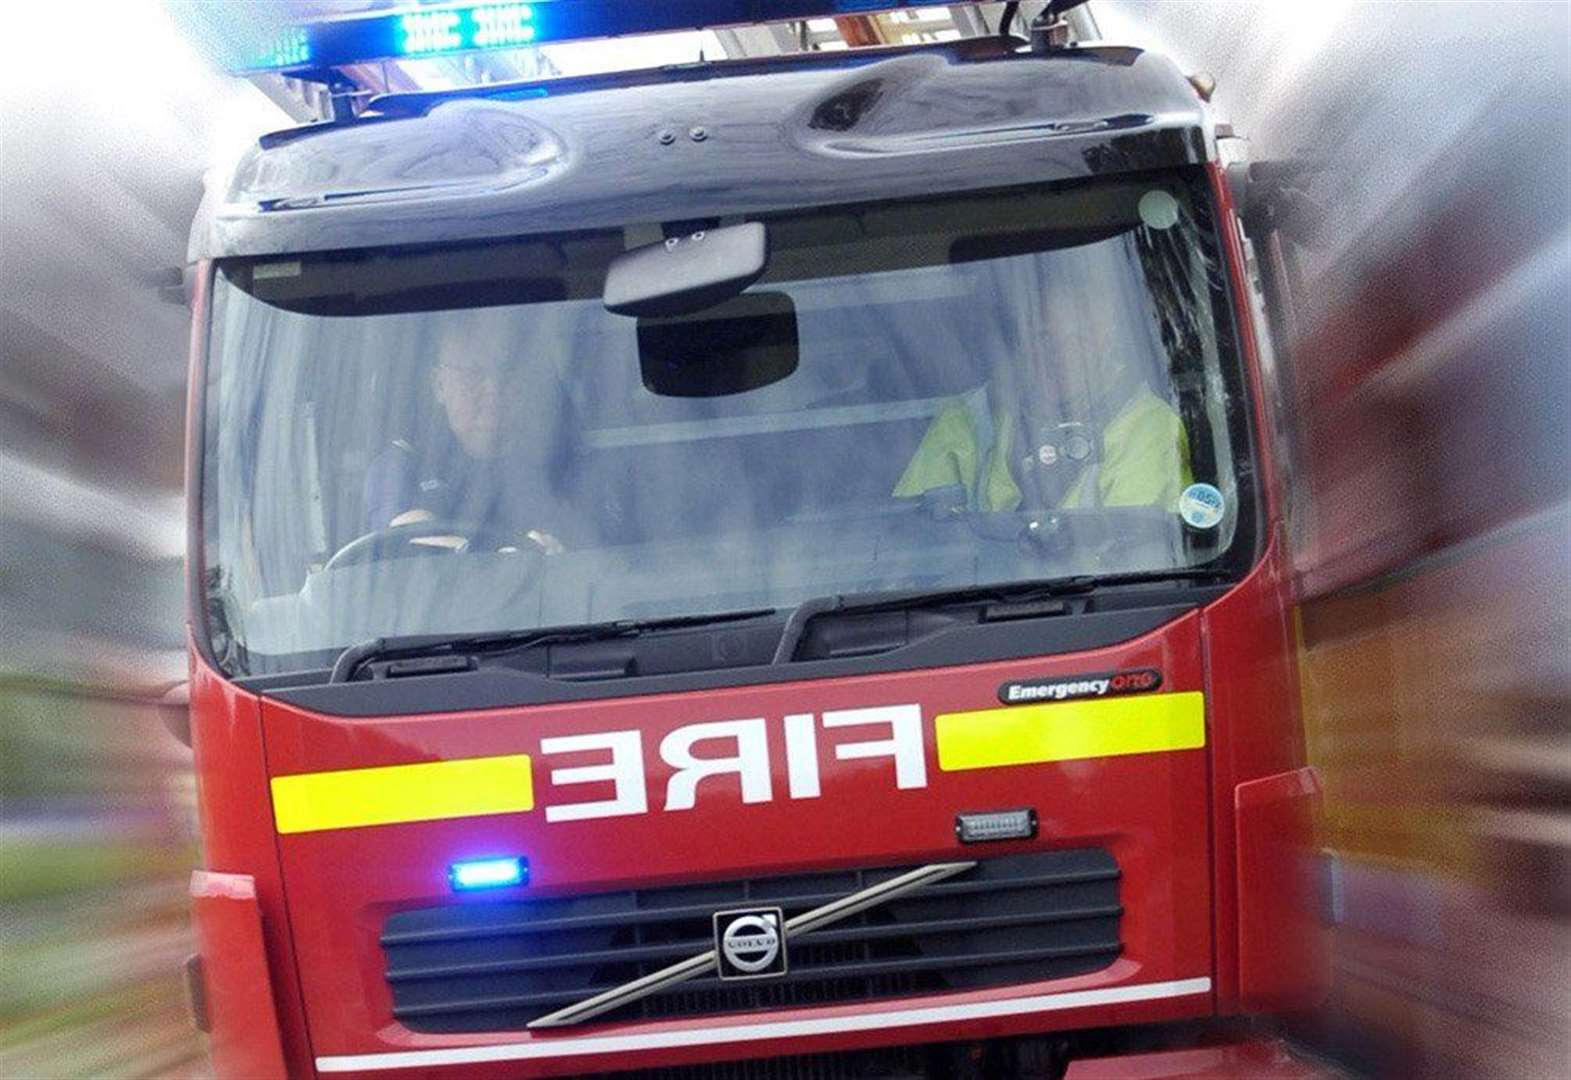 Firefighters called to car fire in Grantham